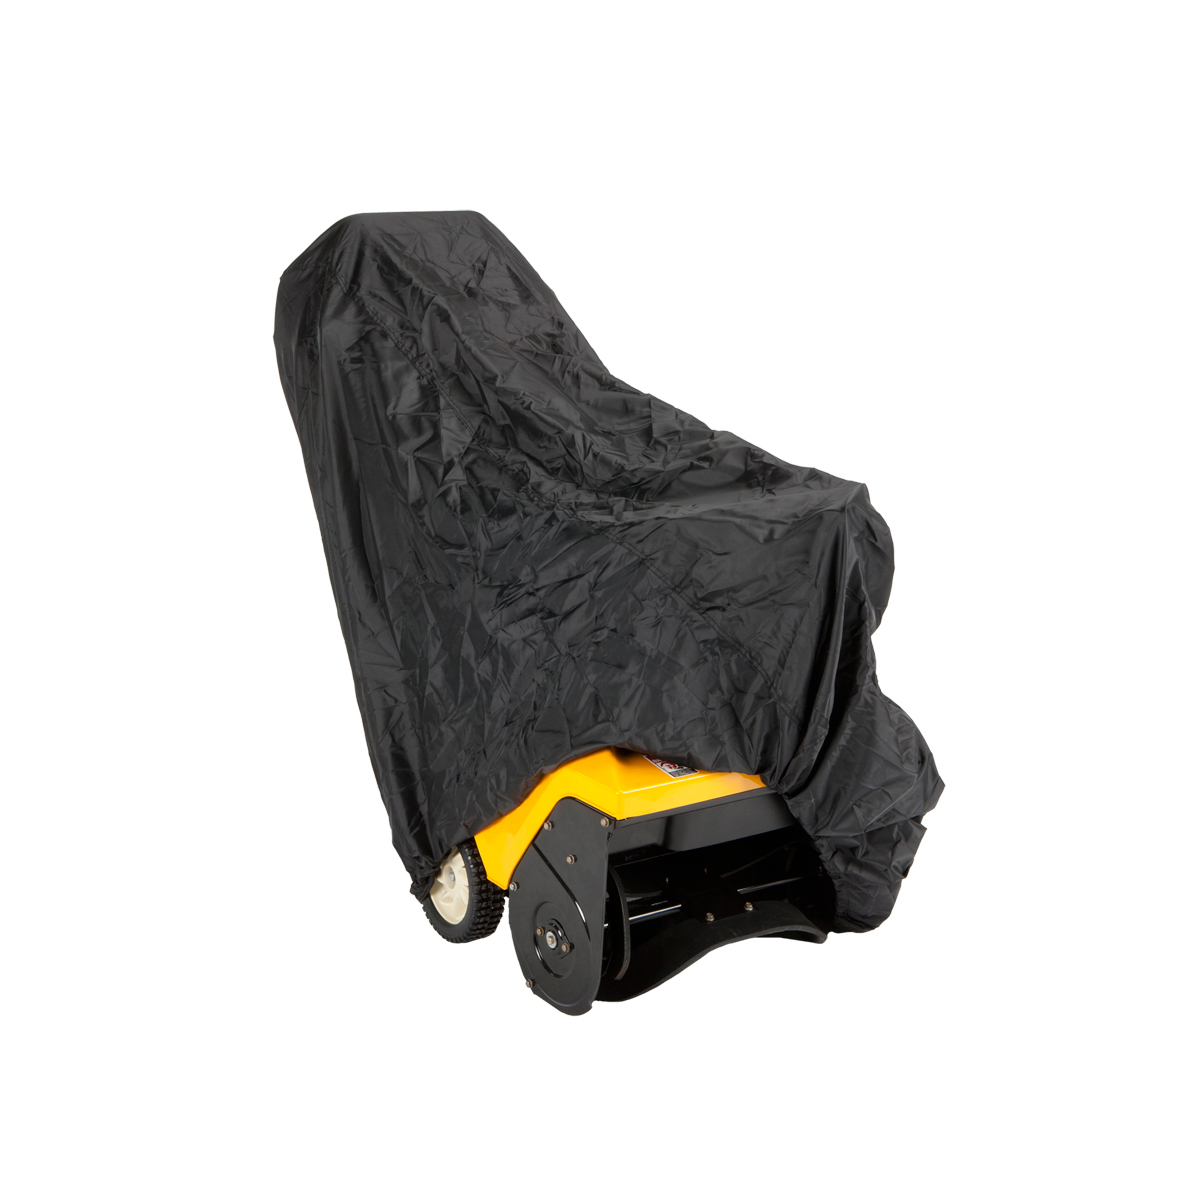 Universal Snow Thrower Cover (up to 30 inch) 490-290-0010